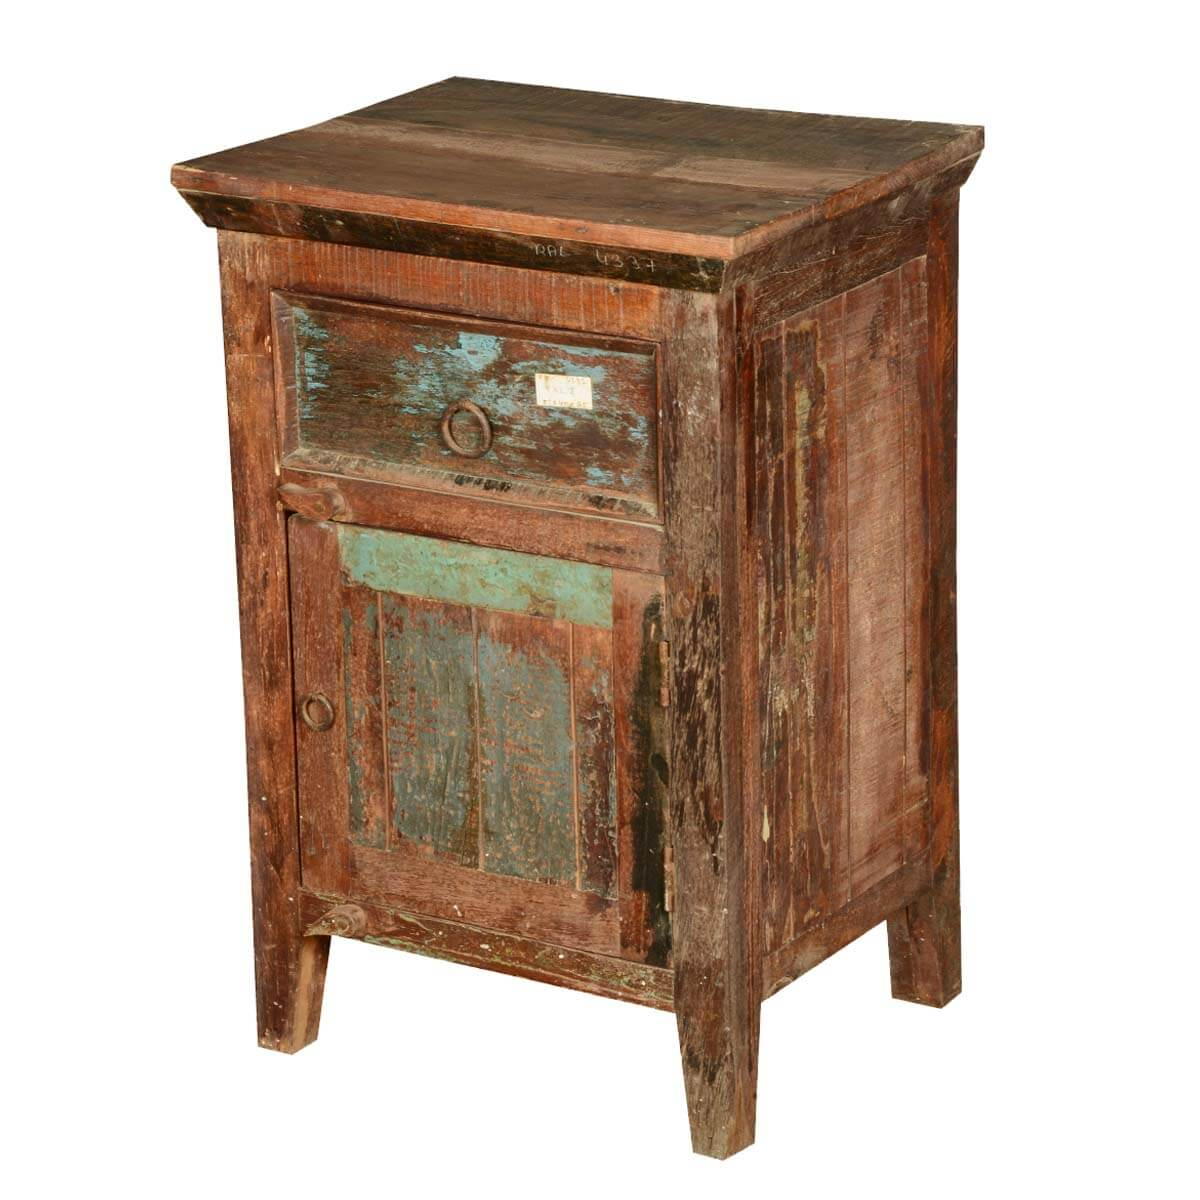 appalachian distressed reclaimed wood nightstand end table